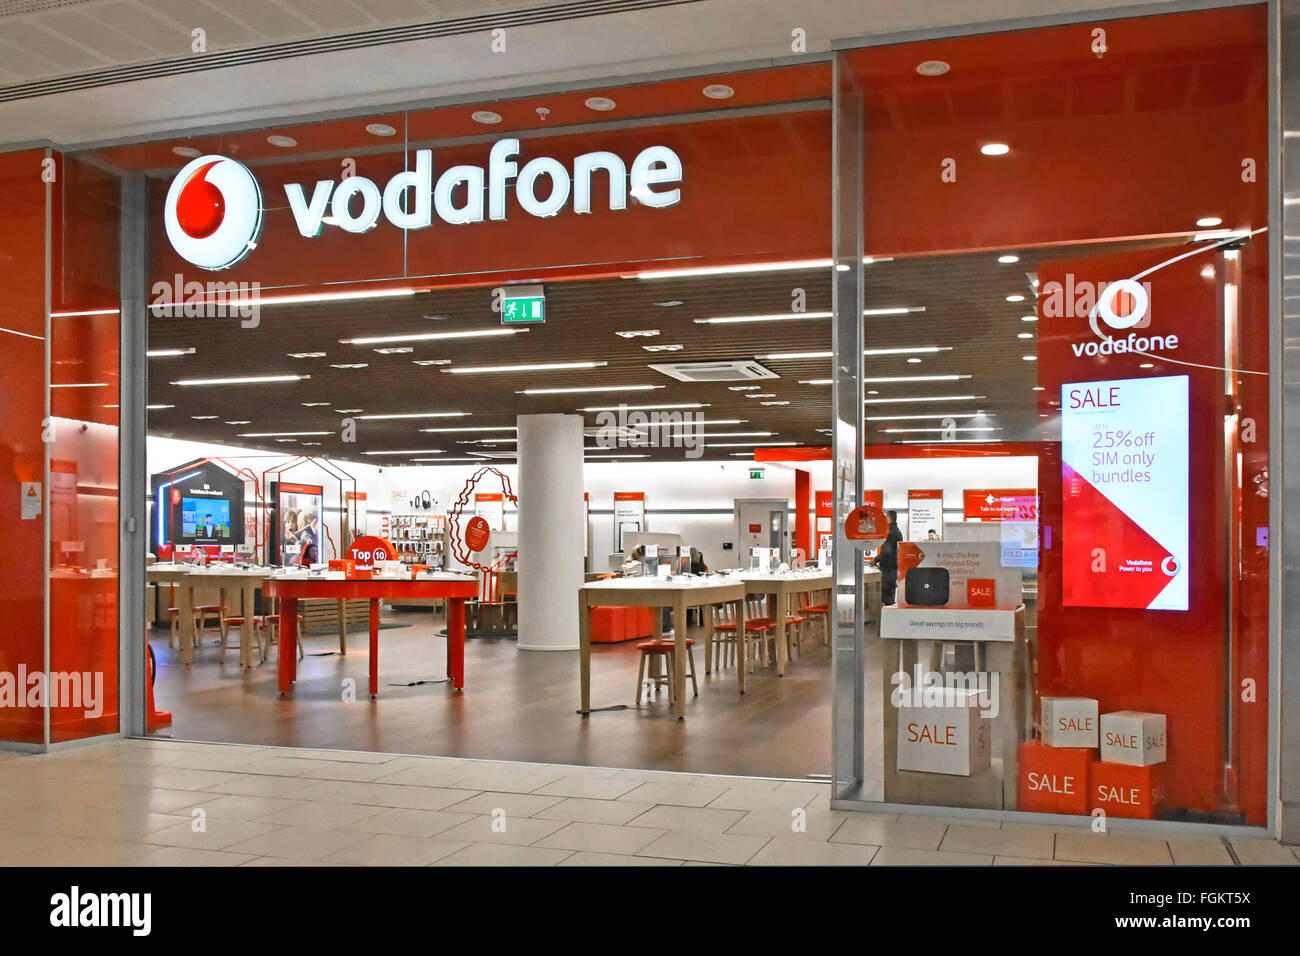 Vodafone Mobile Phone Store Shopfront Sign With Interior View Of Stock Photo Alamy